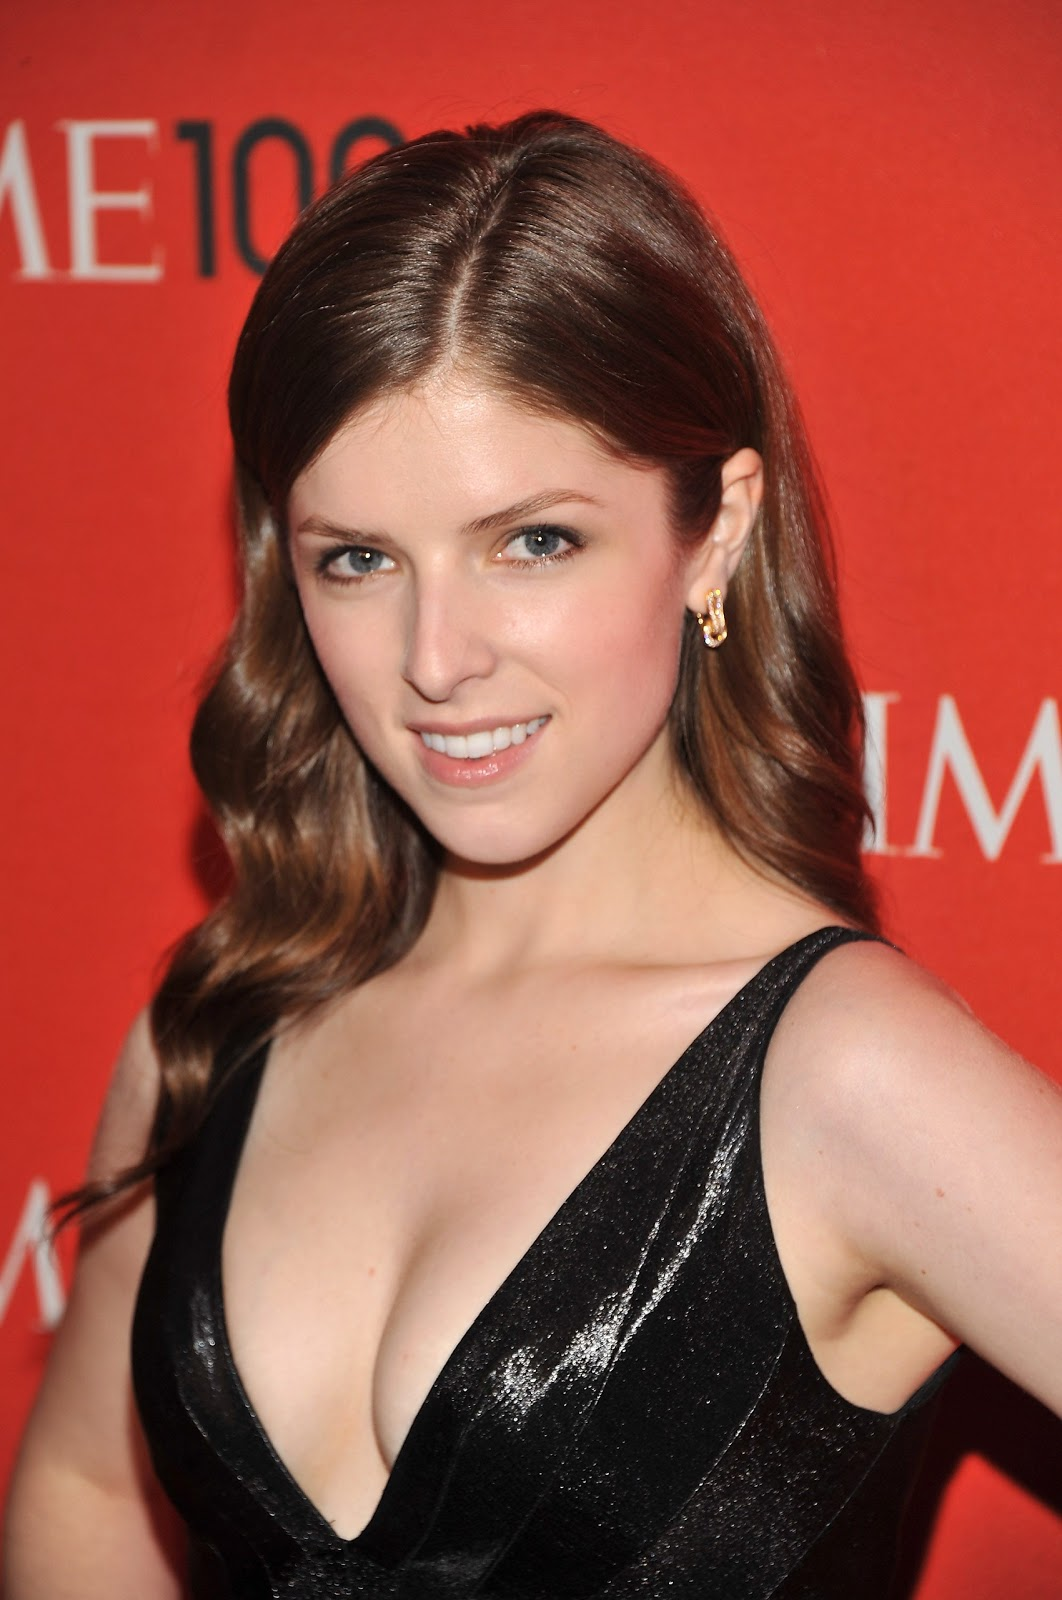 Anna Kendrick Sexy Video